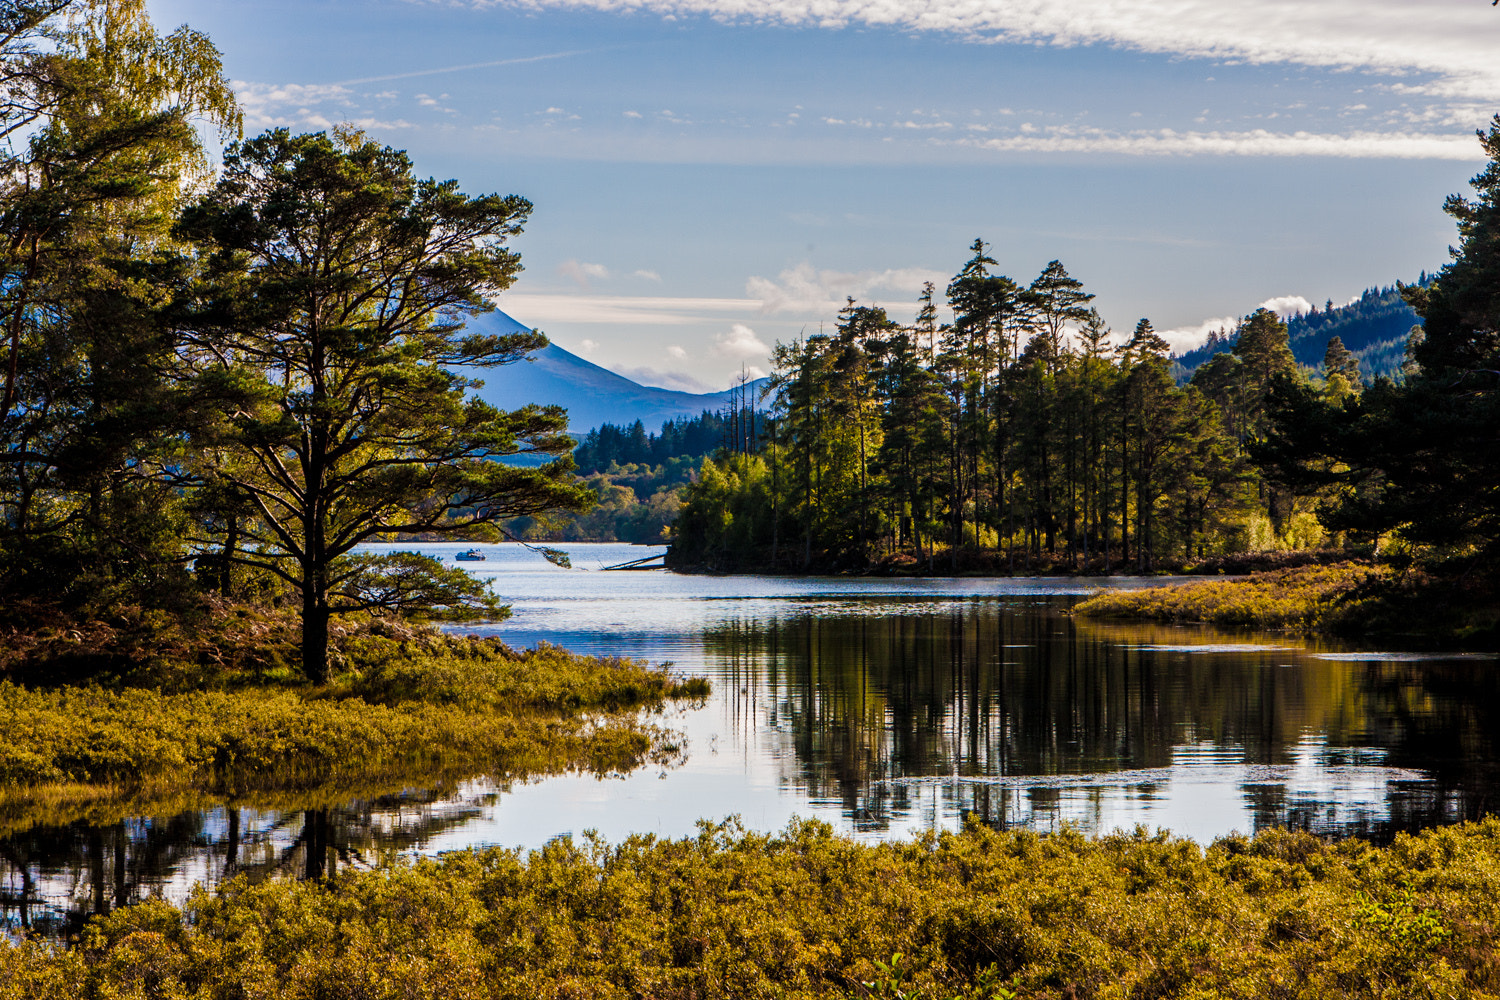 Photograph Scottish Landscape II by Michael Backes on 500px